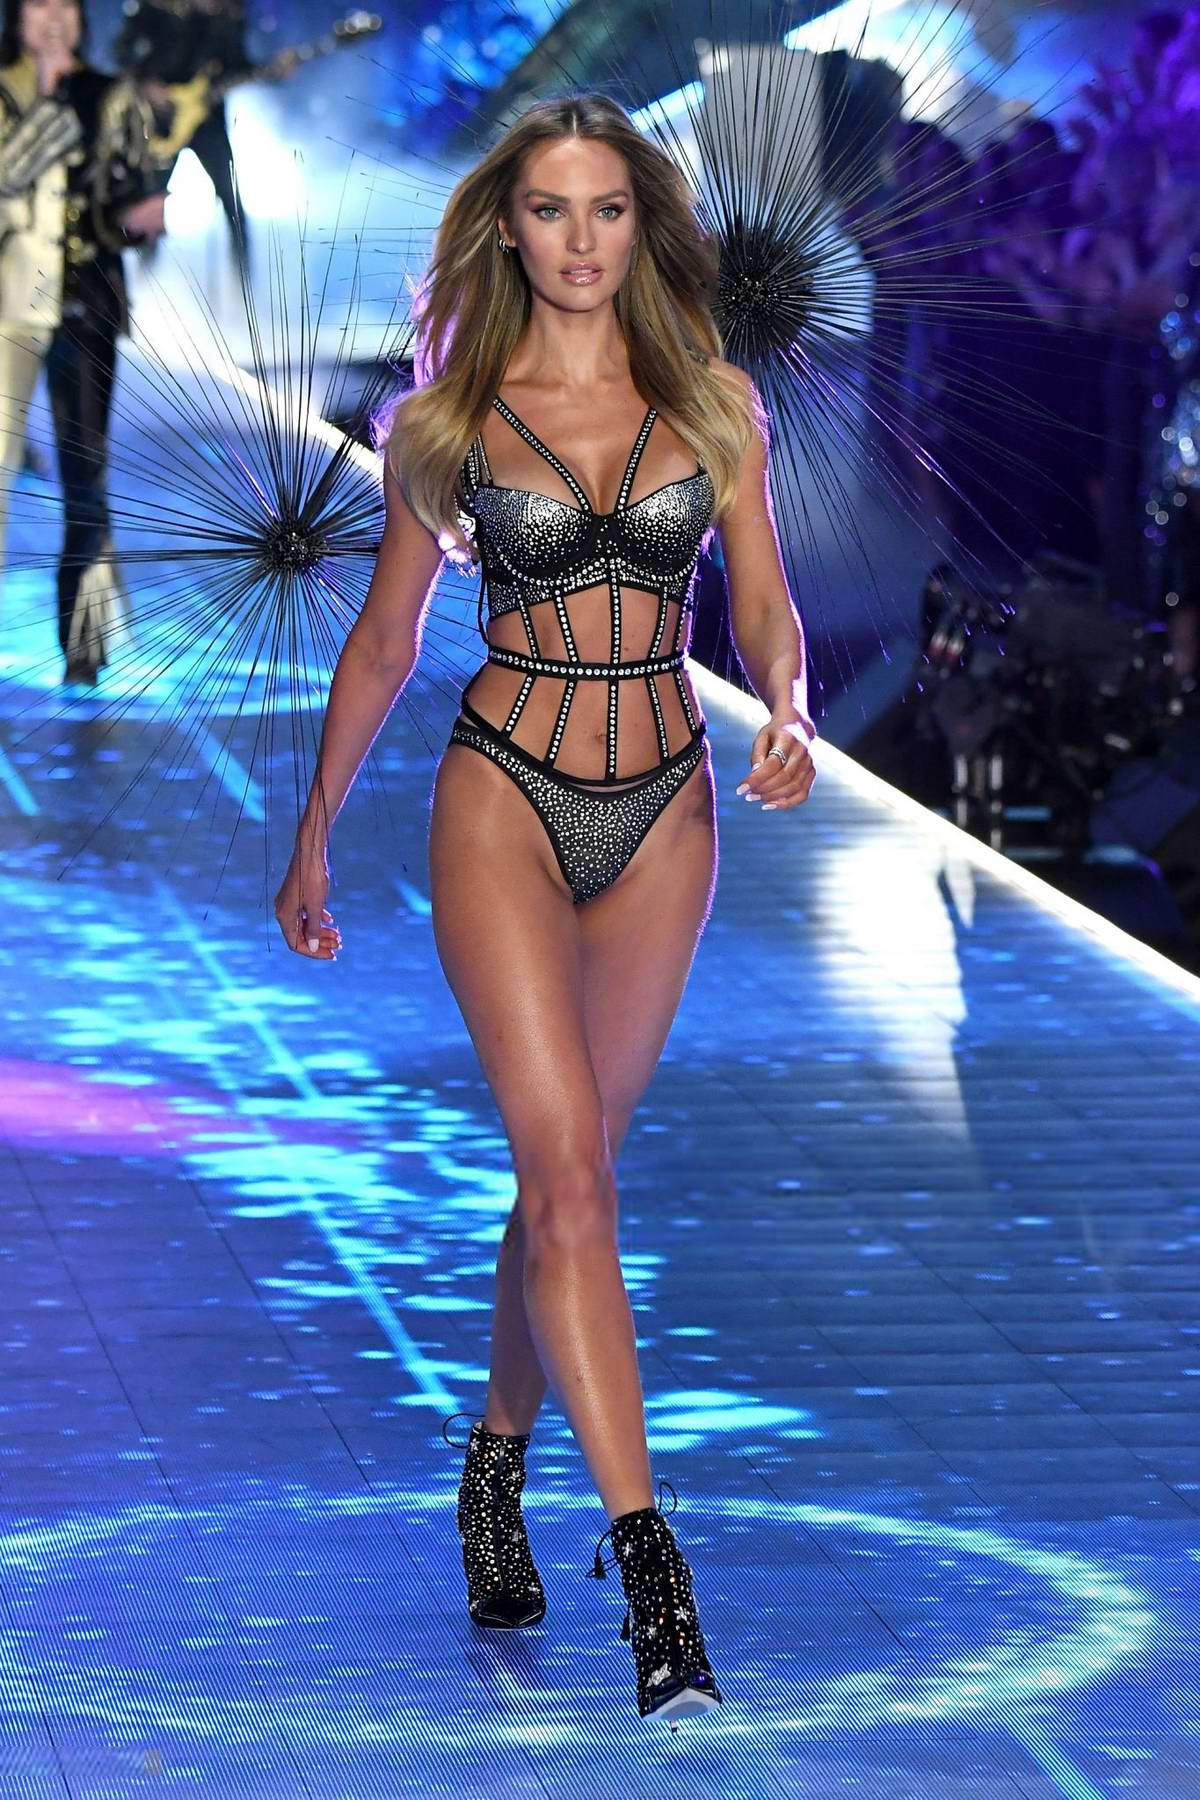 Candice Swanepoel walks the runway during the 2018 Victoria's Secret Fashion Show at Pier 94 in New York City